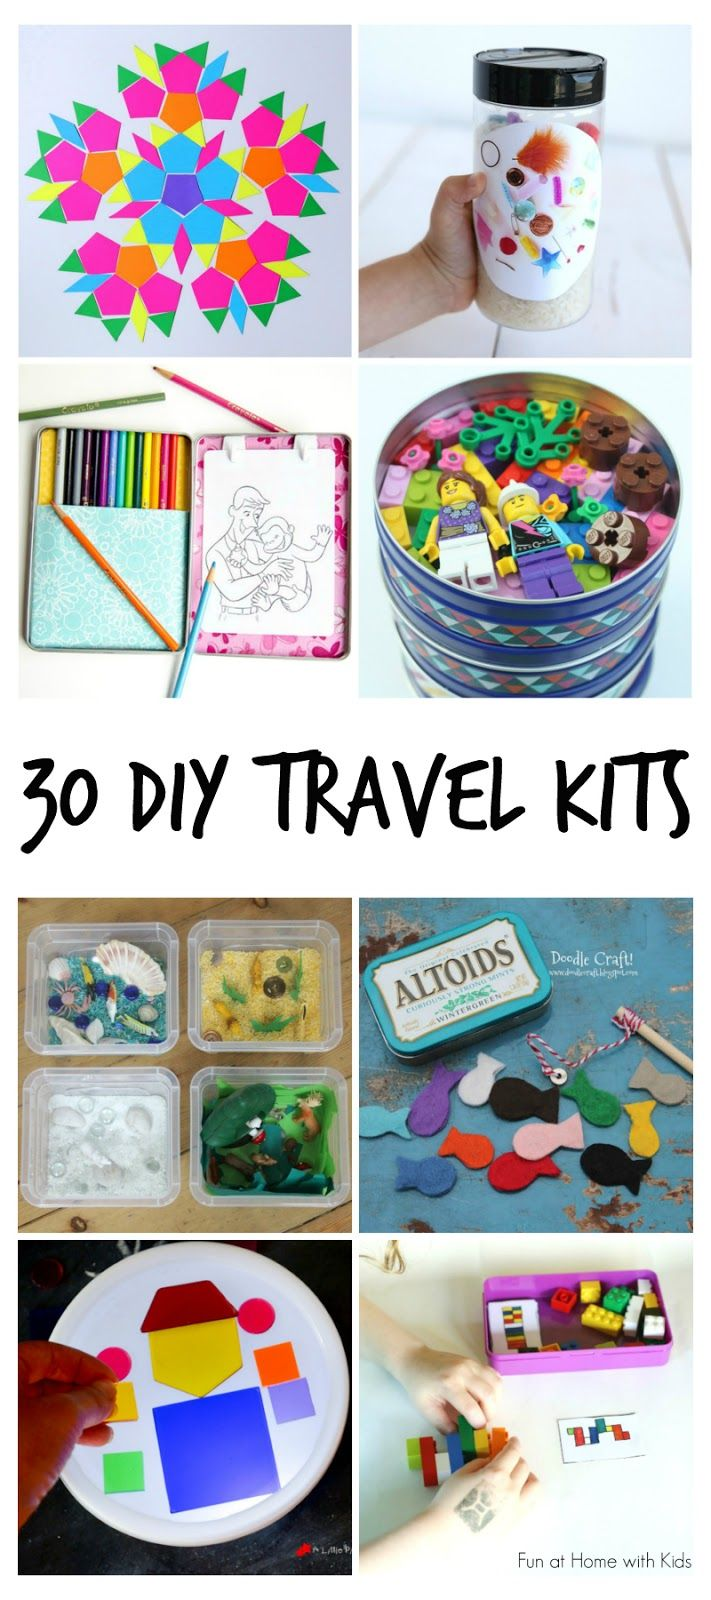 Easy Crafts That Can Be Made While Traveling